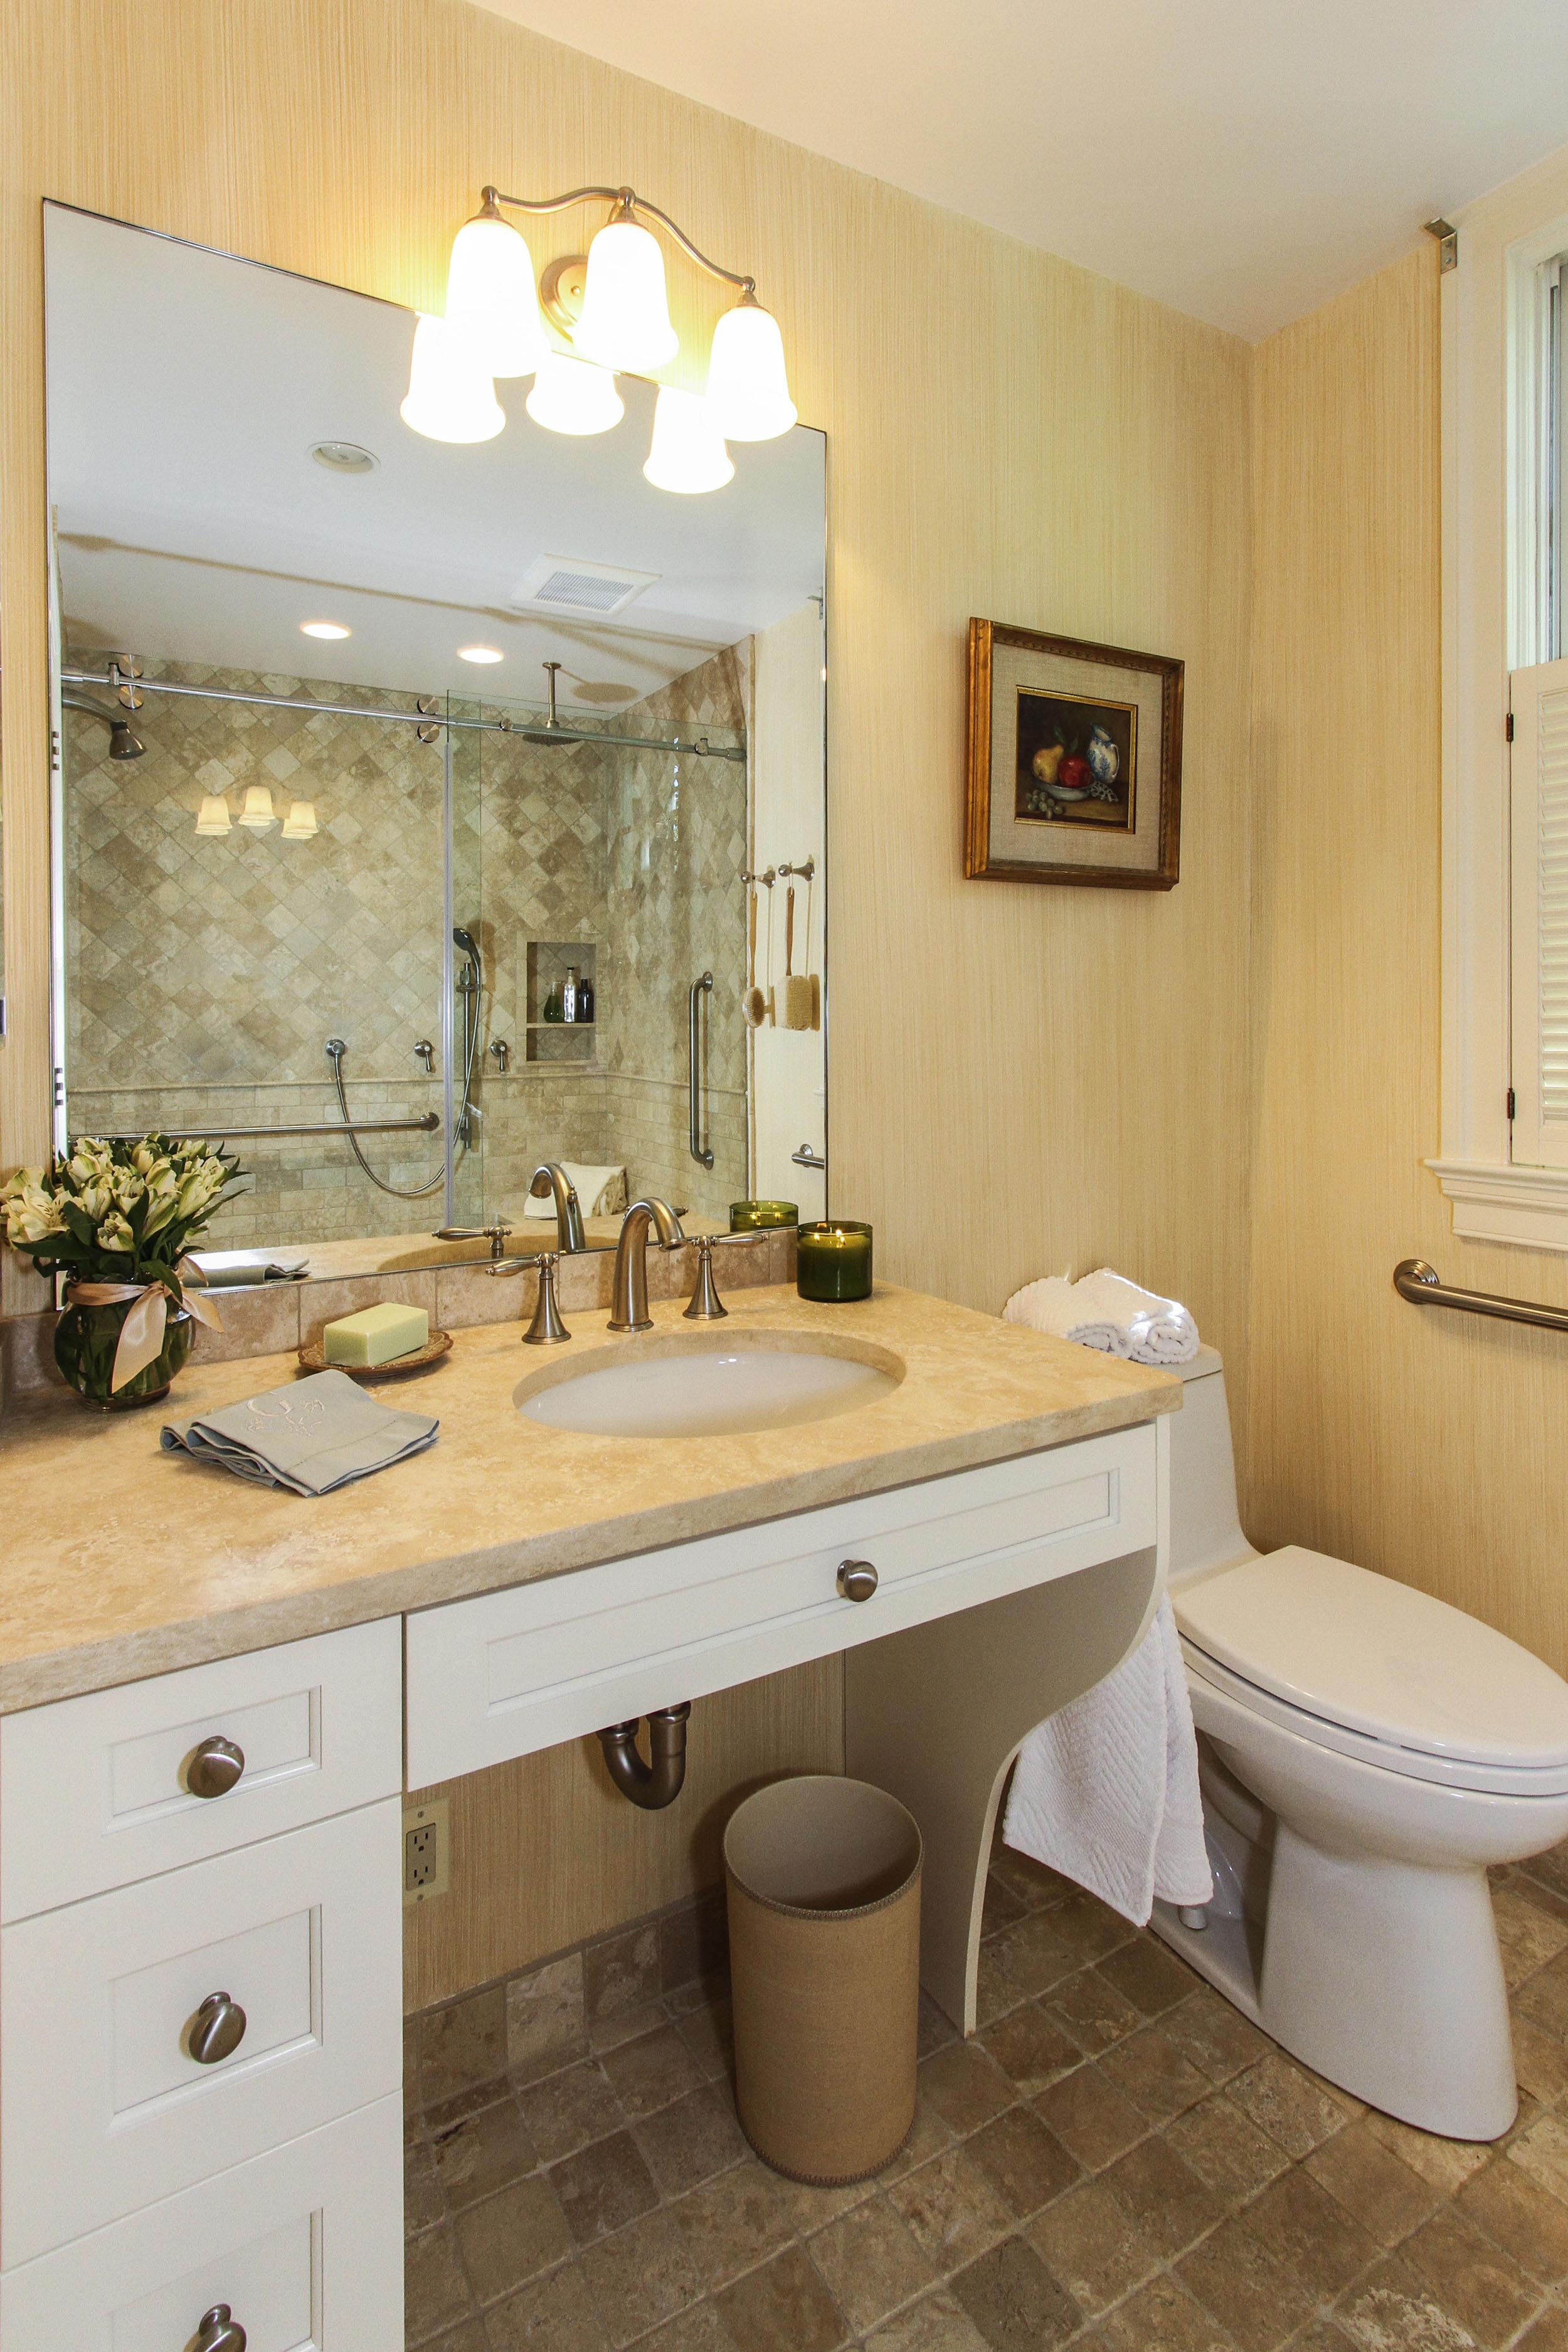 Chevy Chase, MD Bathroom Remodel